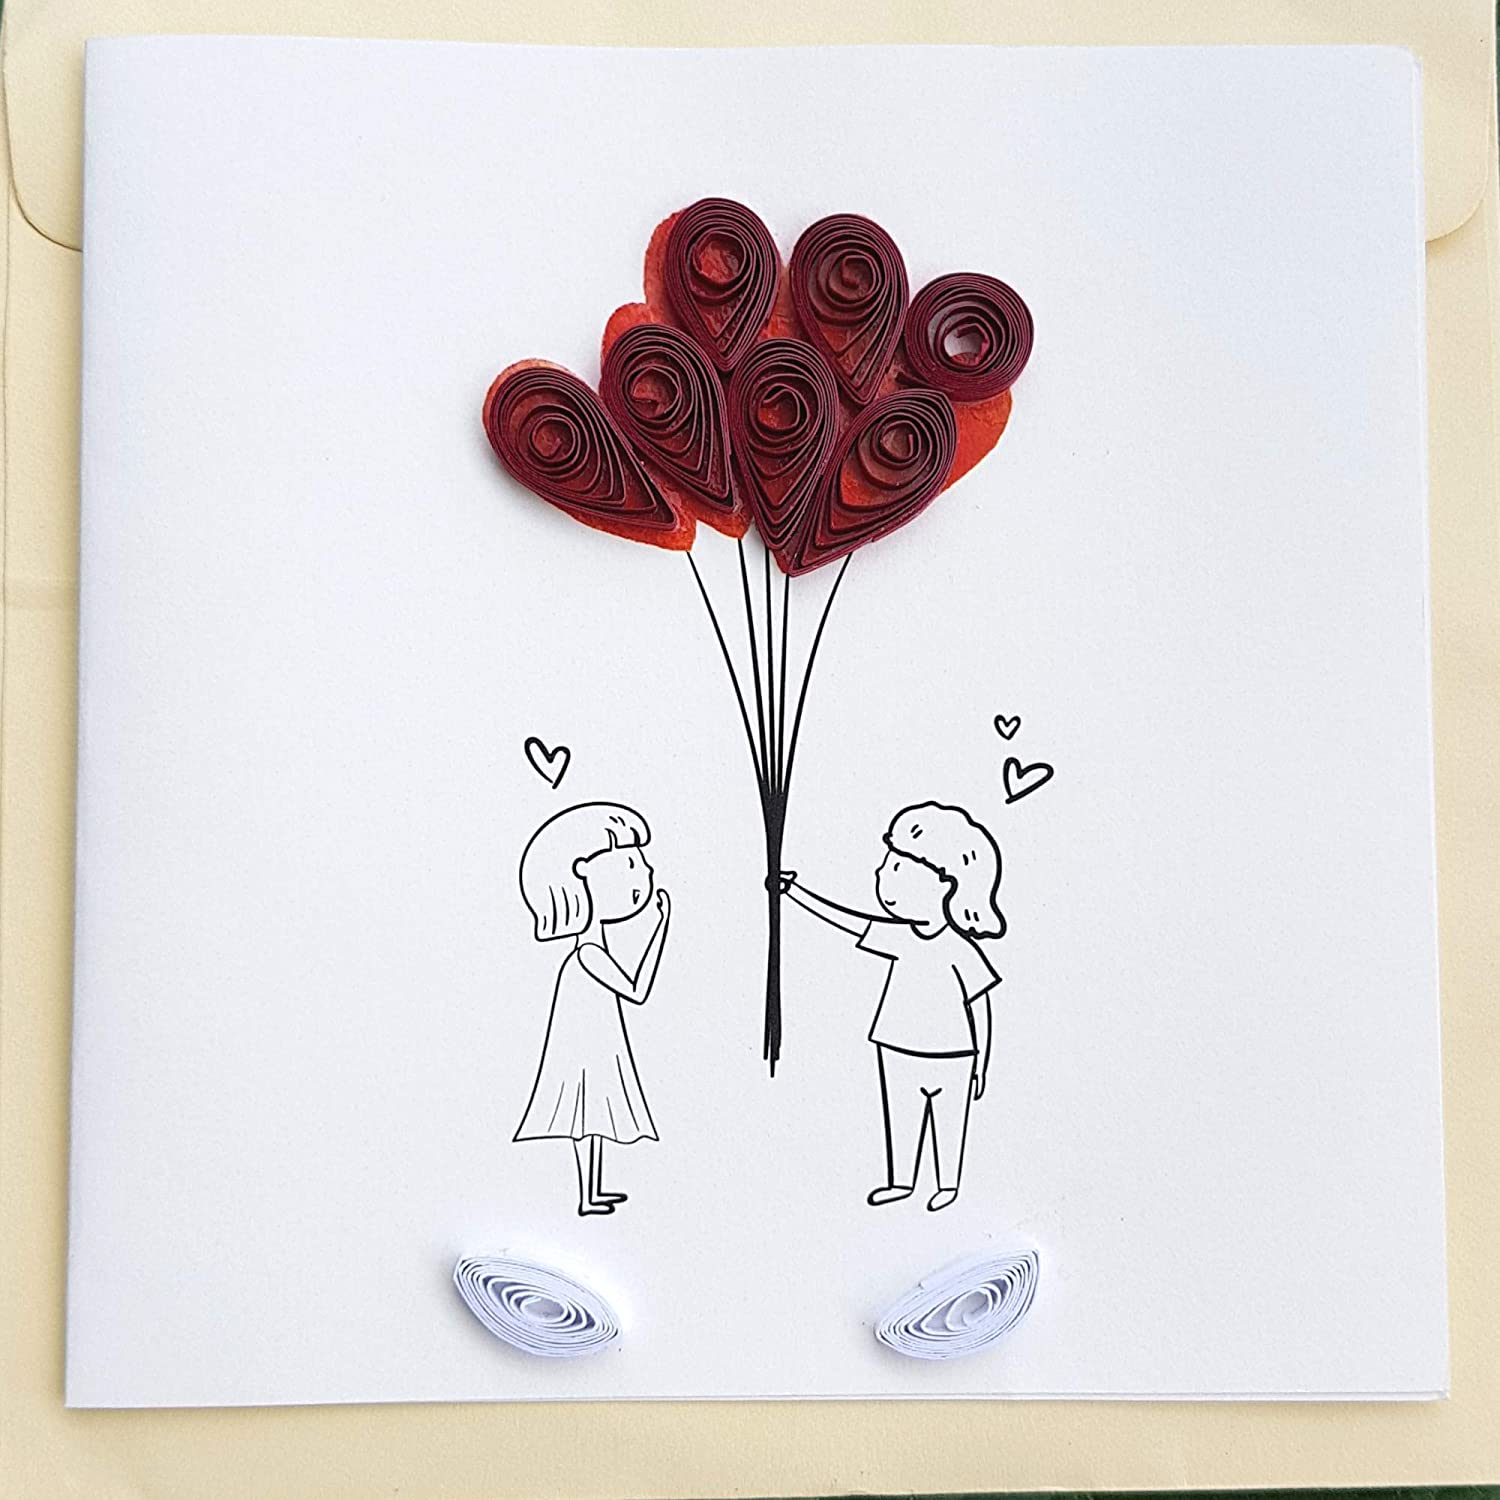 Love Card for her/him - Valentines Anniversary Birthday Gifts Greeting cards 6